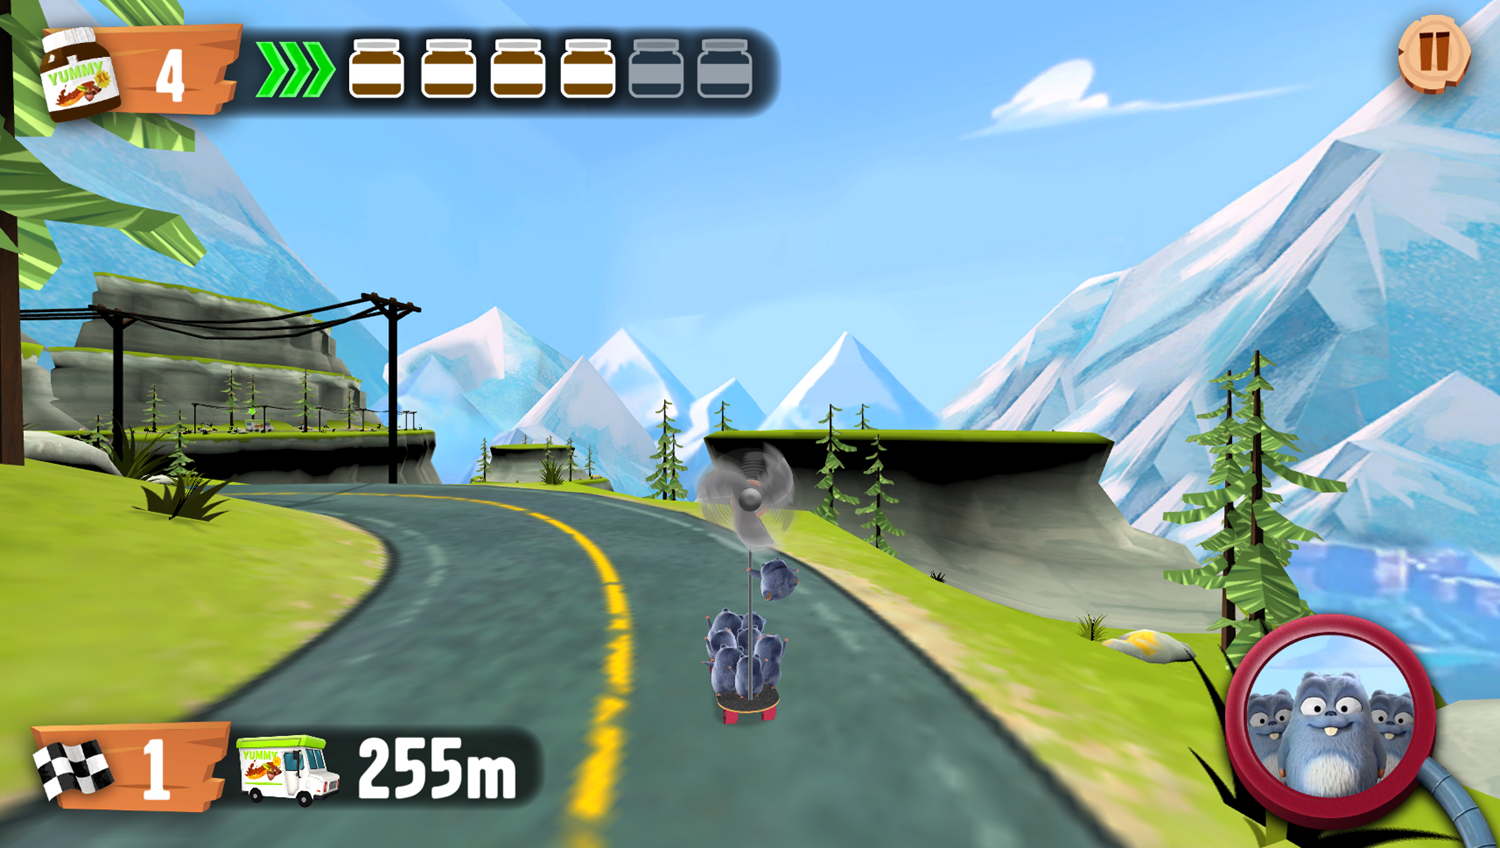 Grizzy and the Lemmings Yummy Run Game Play Screenshot.